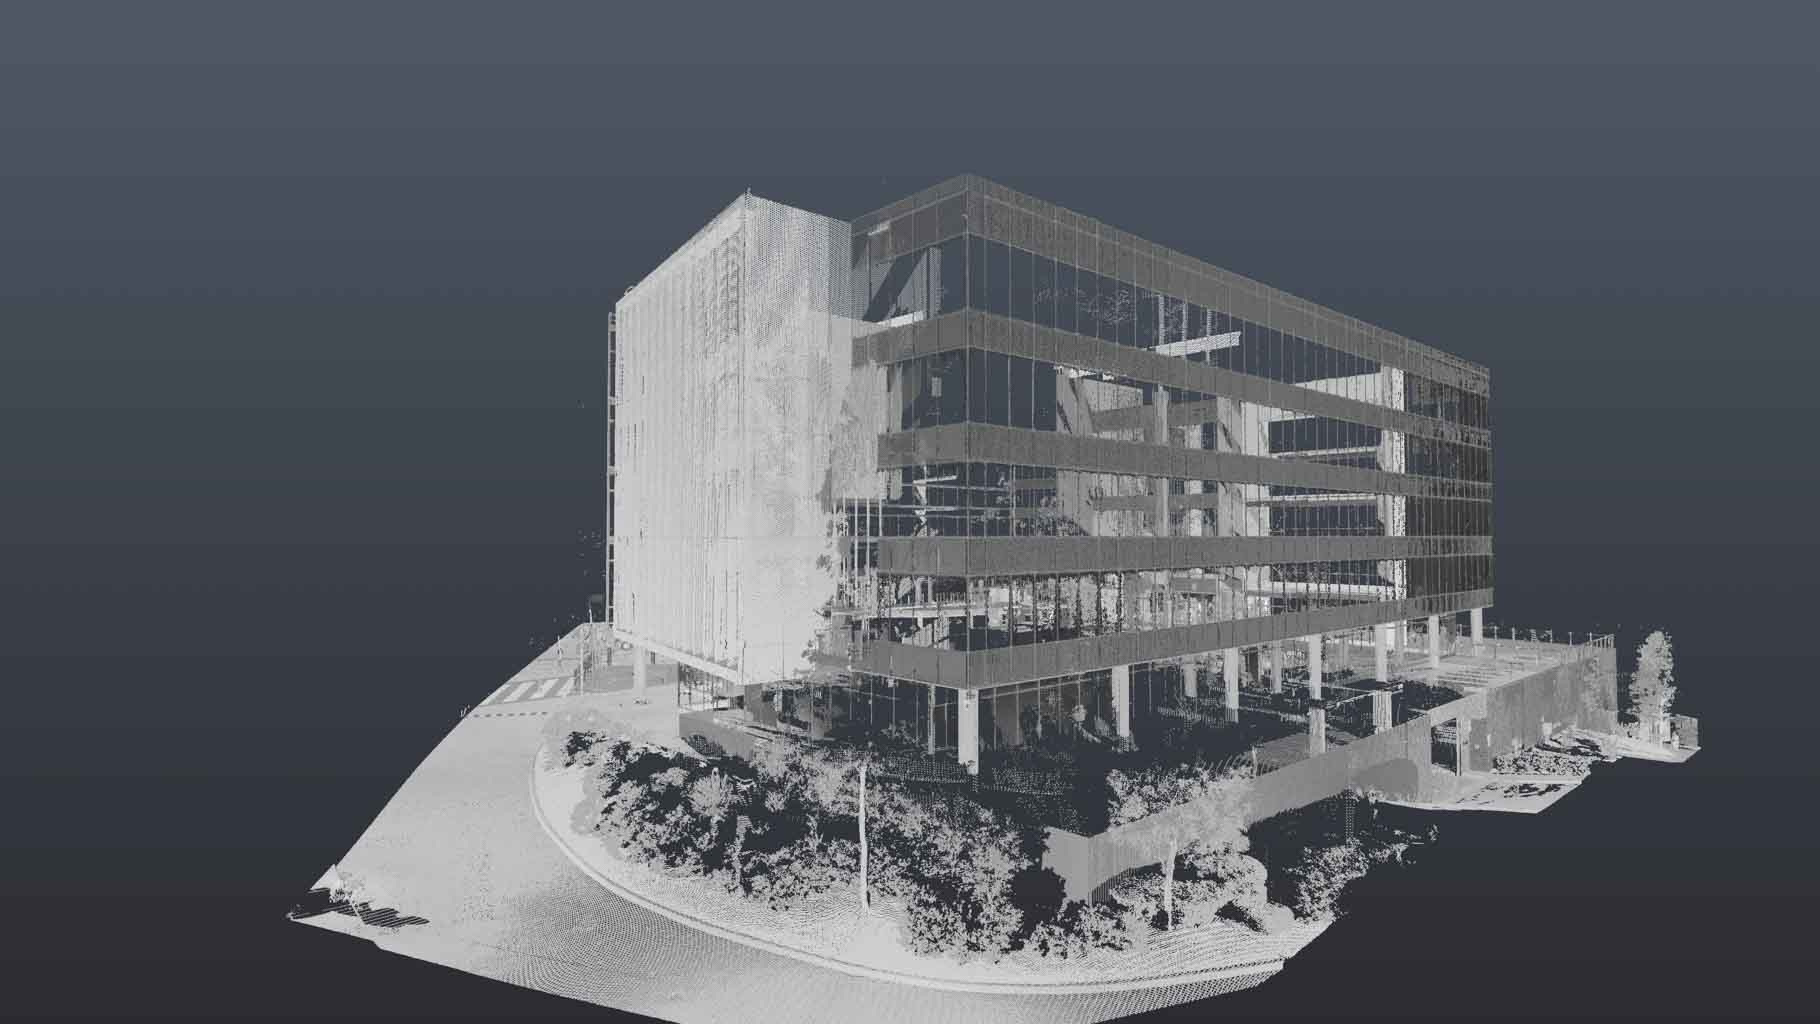 A SAMPLE OF A 3D SCAN FOR AN EXTERNAL ELEVATION DRAWING BY REALSERVE OF A BUILDING